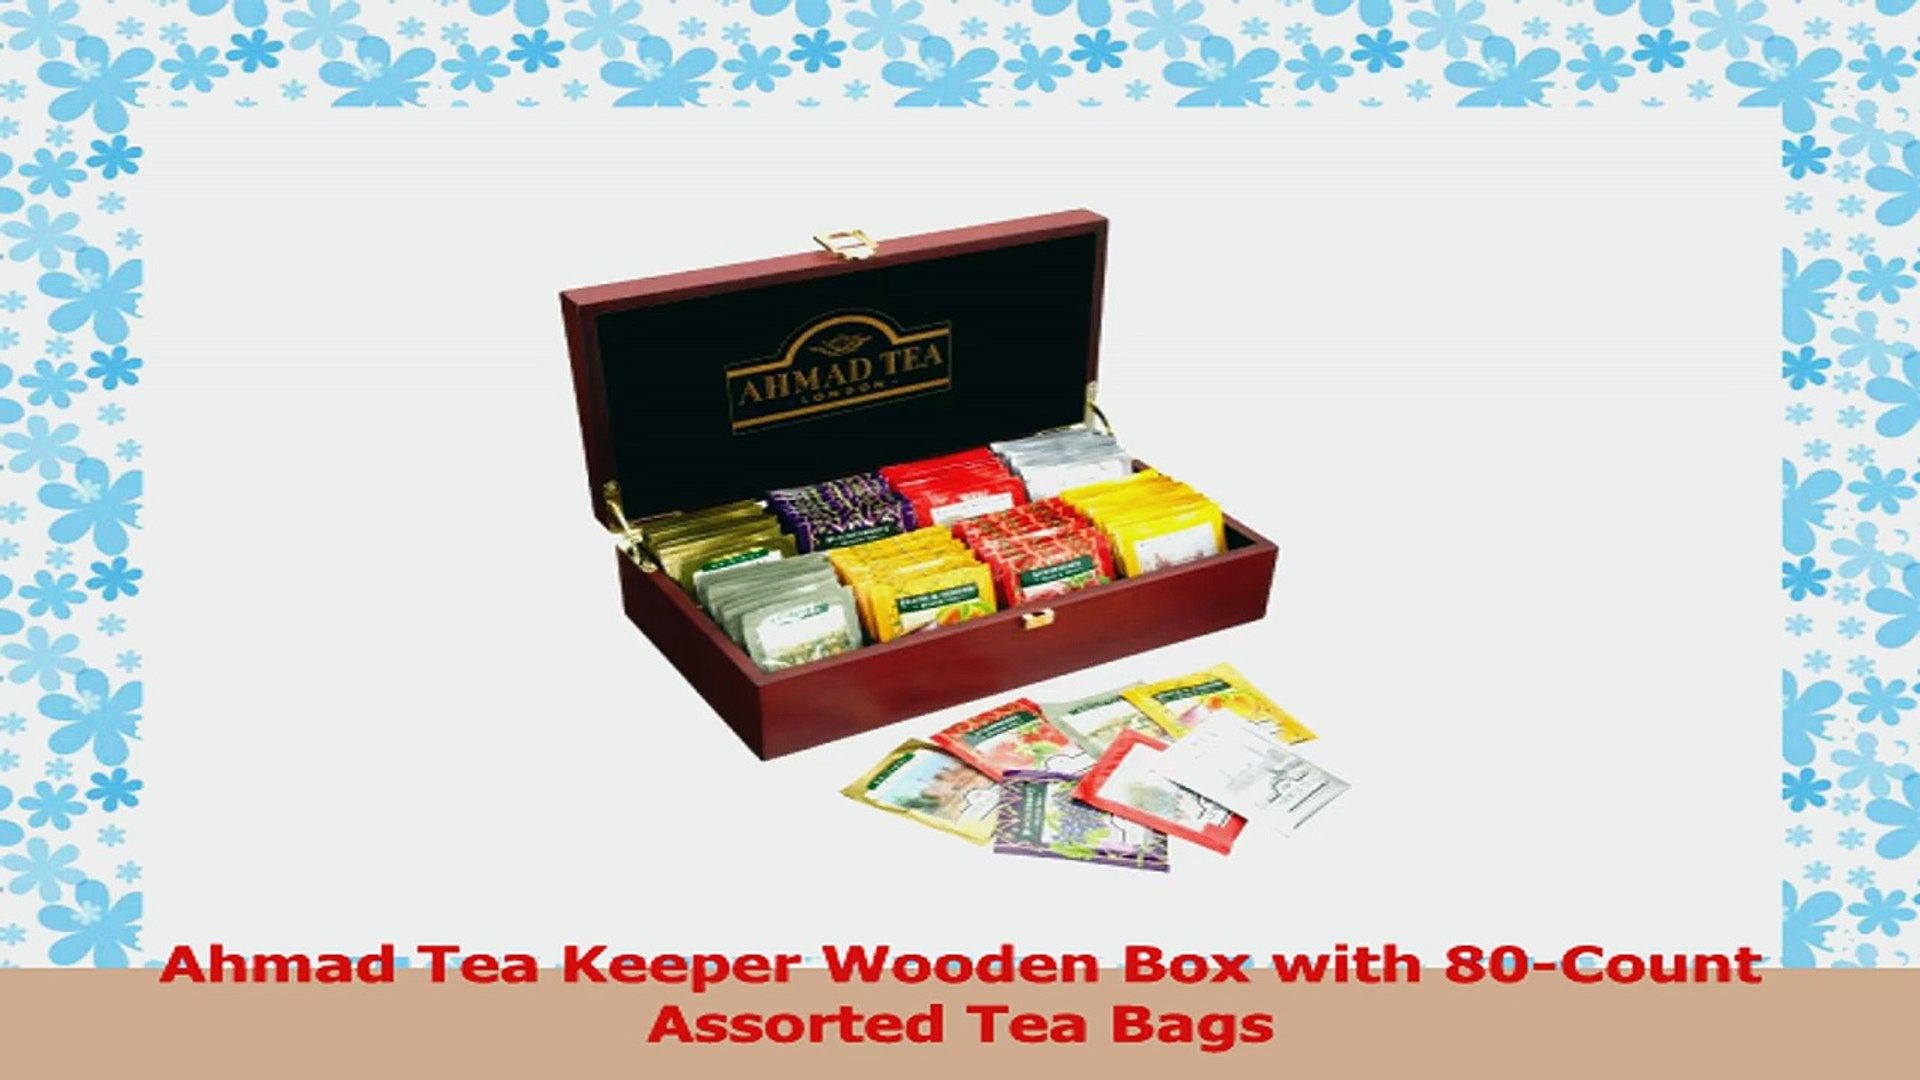 Ahmad Tea Keeper Wooden Box With 80count Assorted Tea Bags 06f8ae80